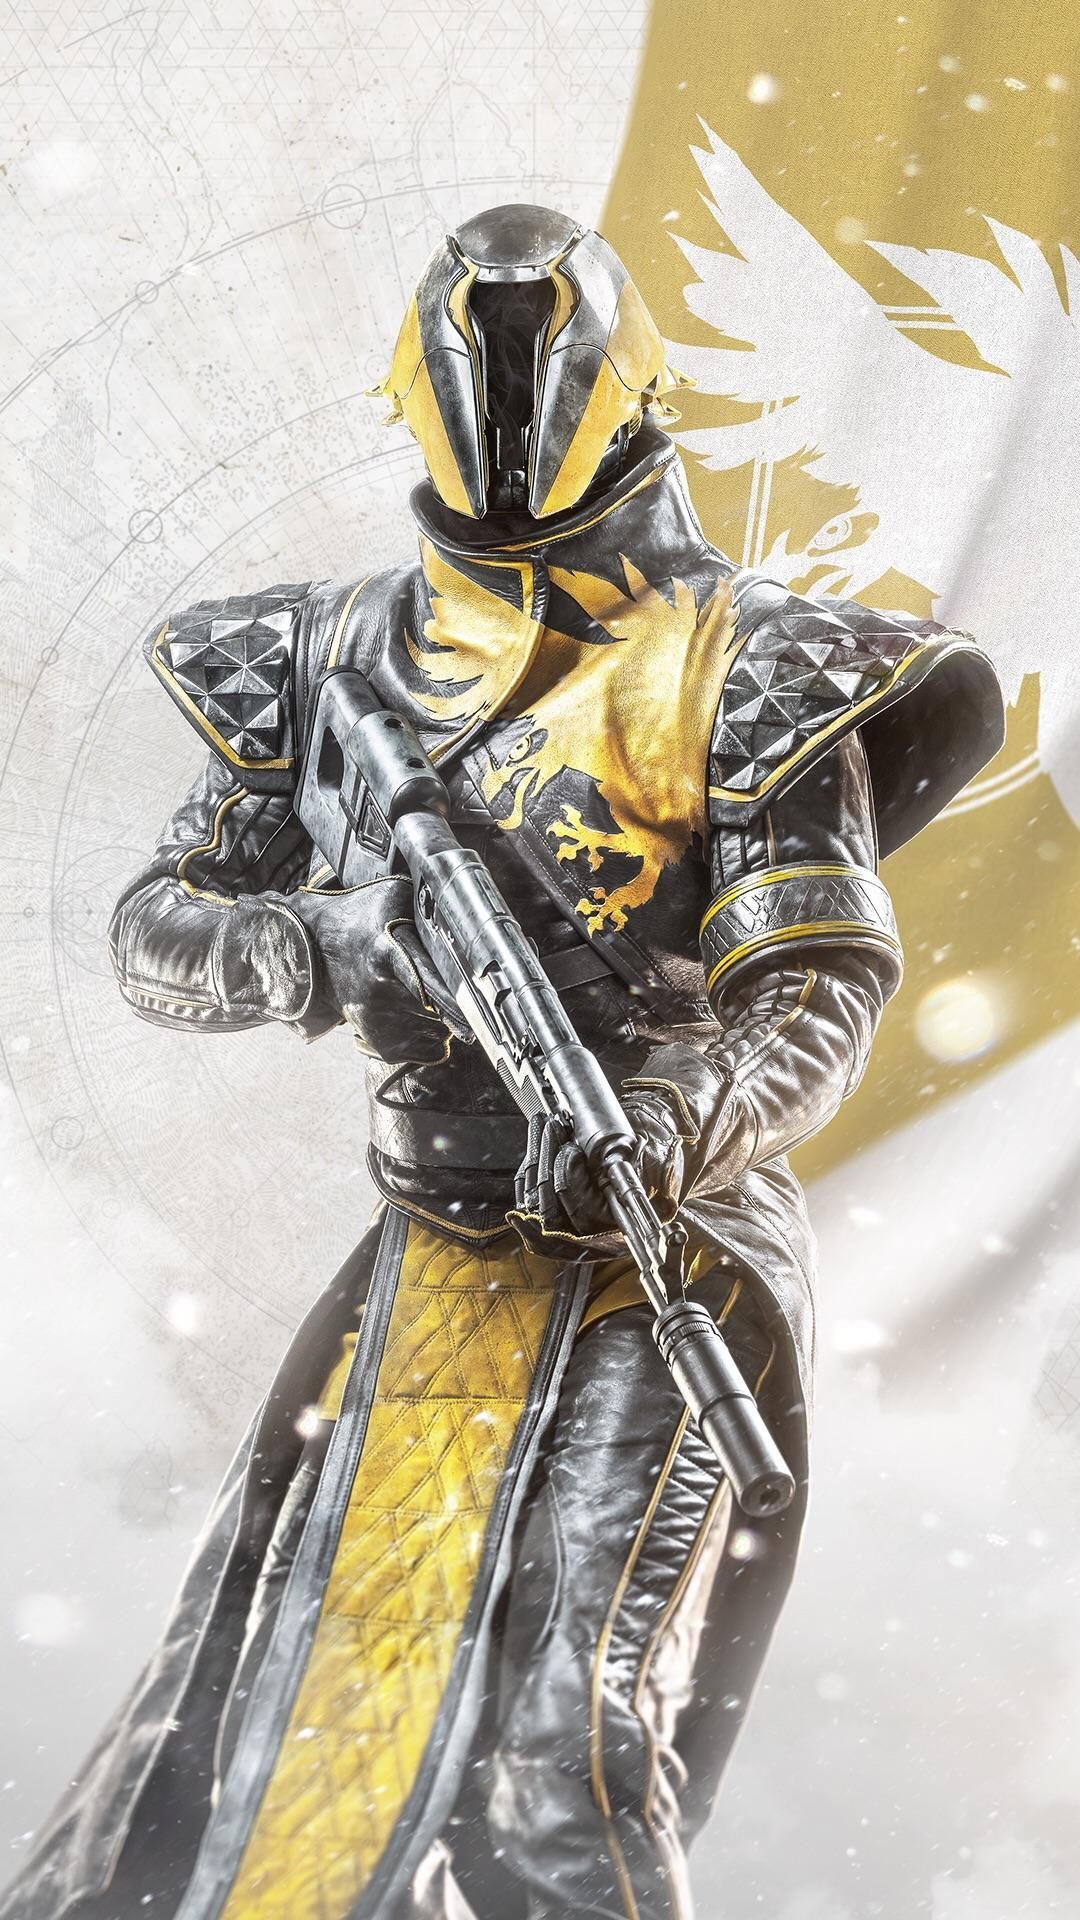 Destiny 2 Warlock smartphone wallpaper gaming